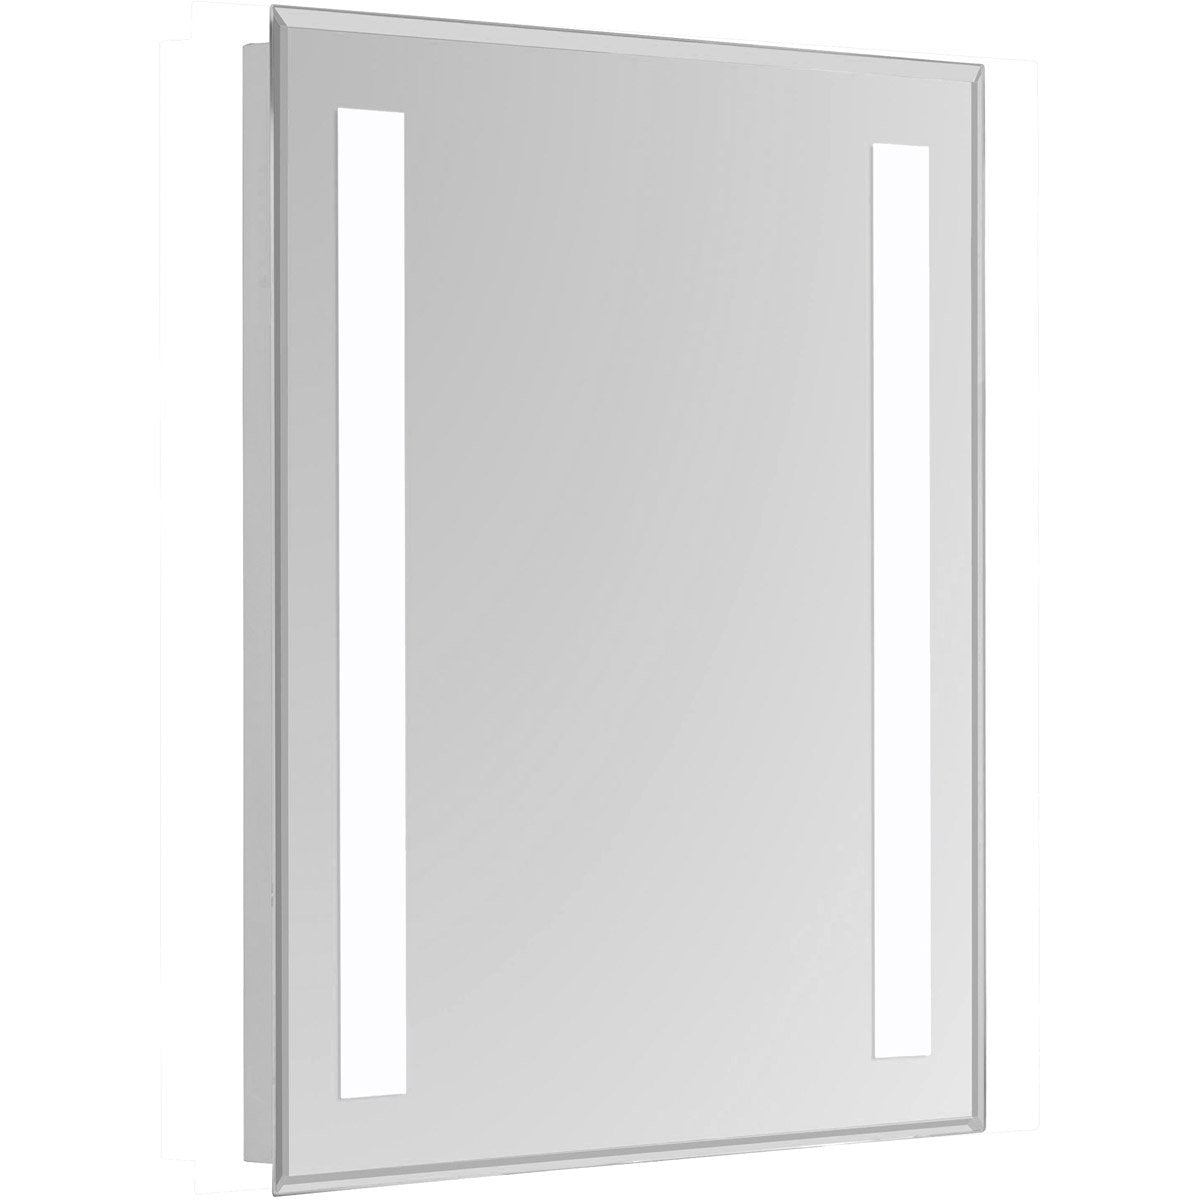 Nova 40 X 24 Hardwired Glossy White Led Wall Mirror (Mre-6304) Led Mirror